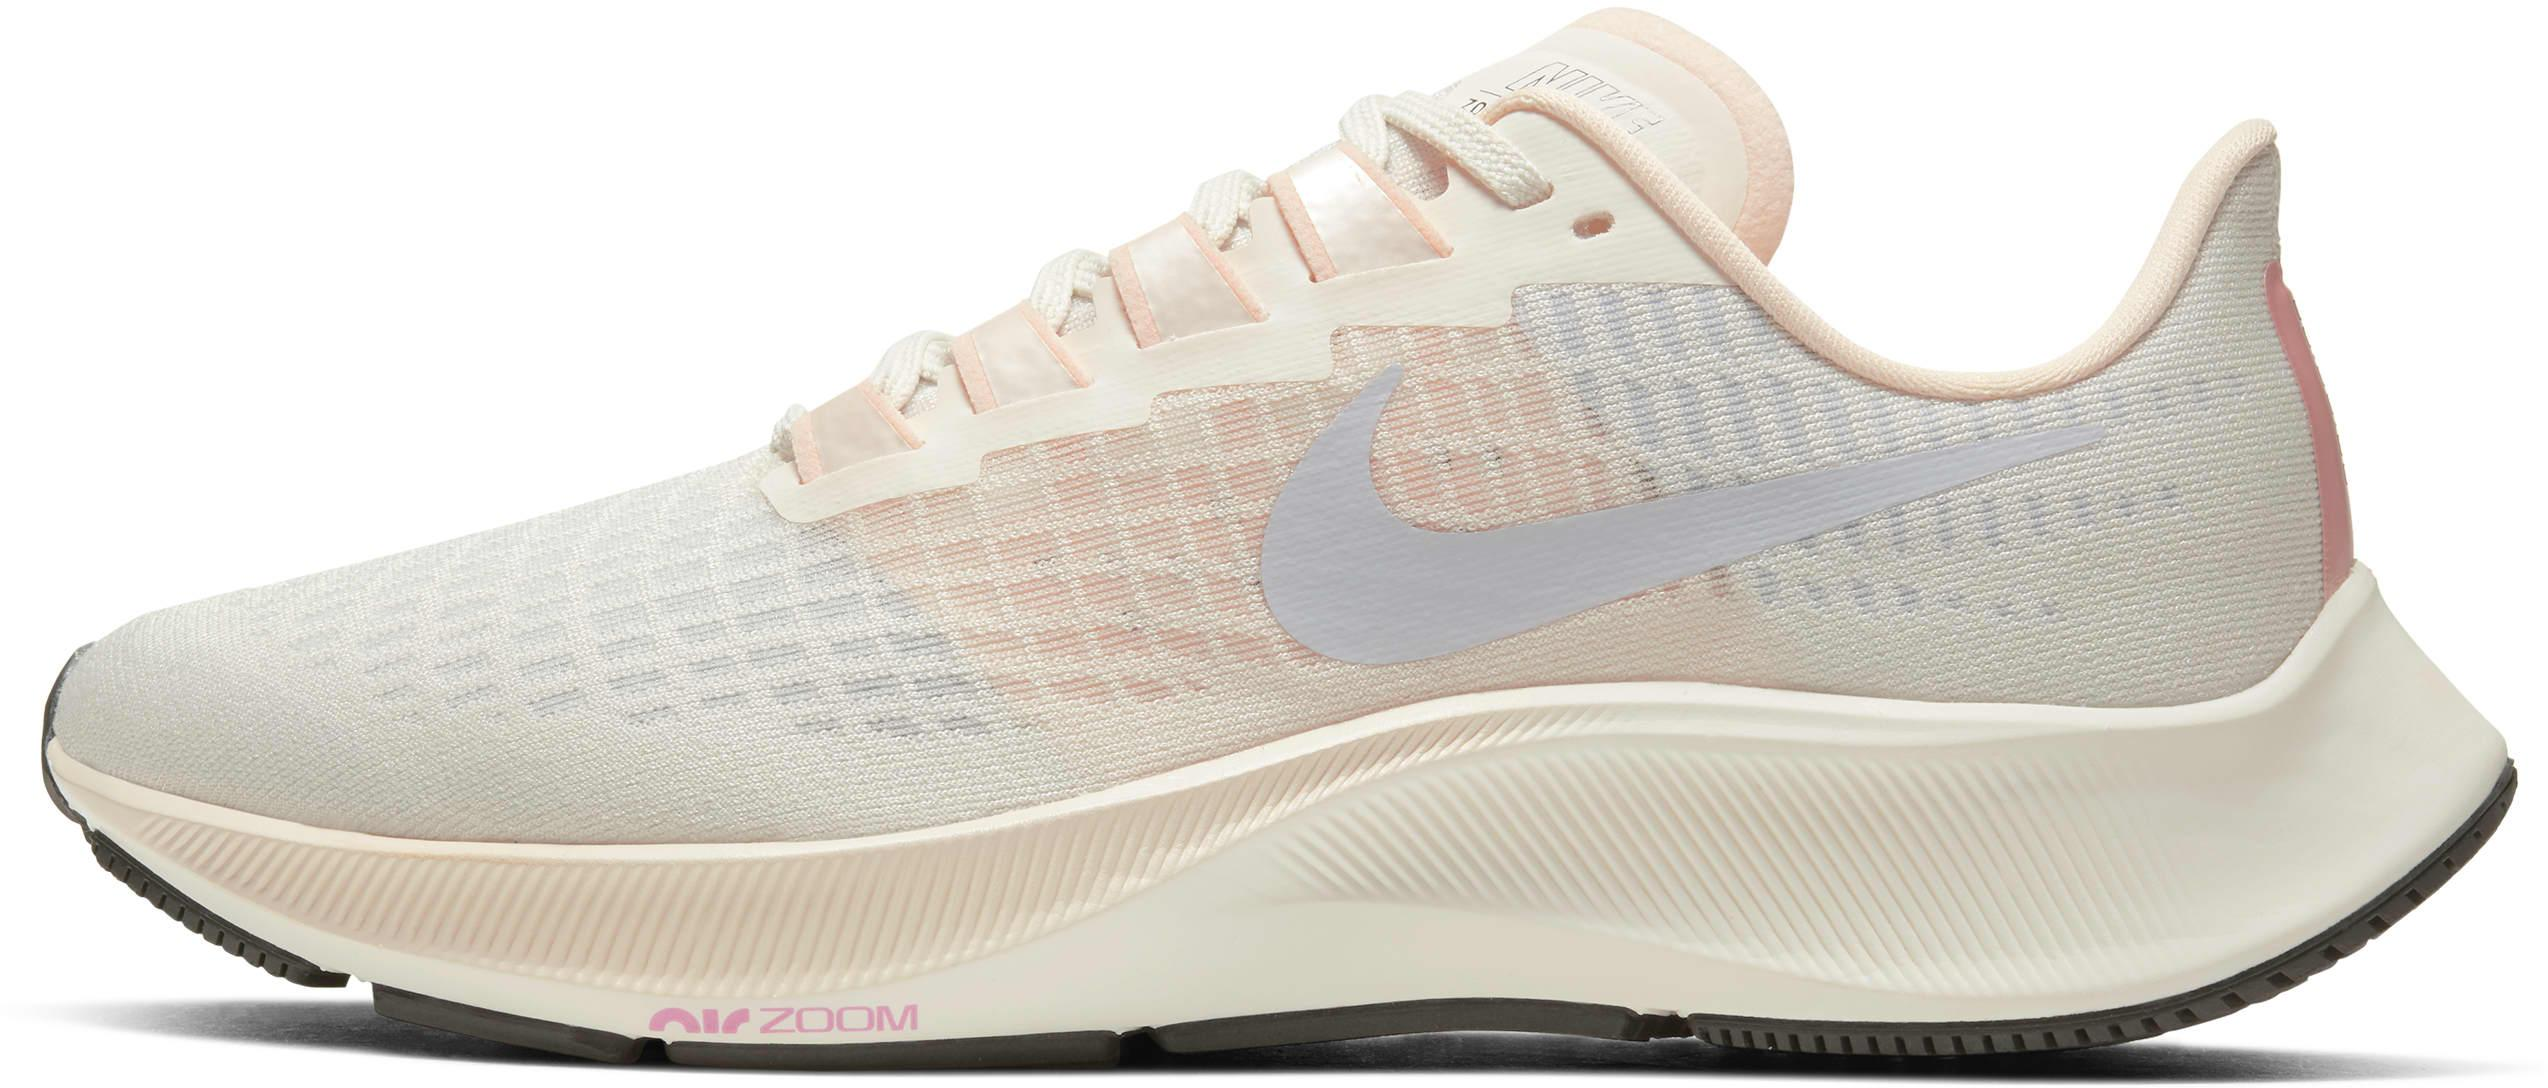 Nike Air Zoom Pegasus 37 Pale Ivory/Barely Volt/Sail/Ghost